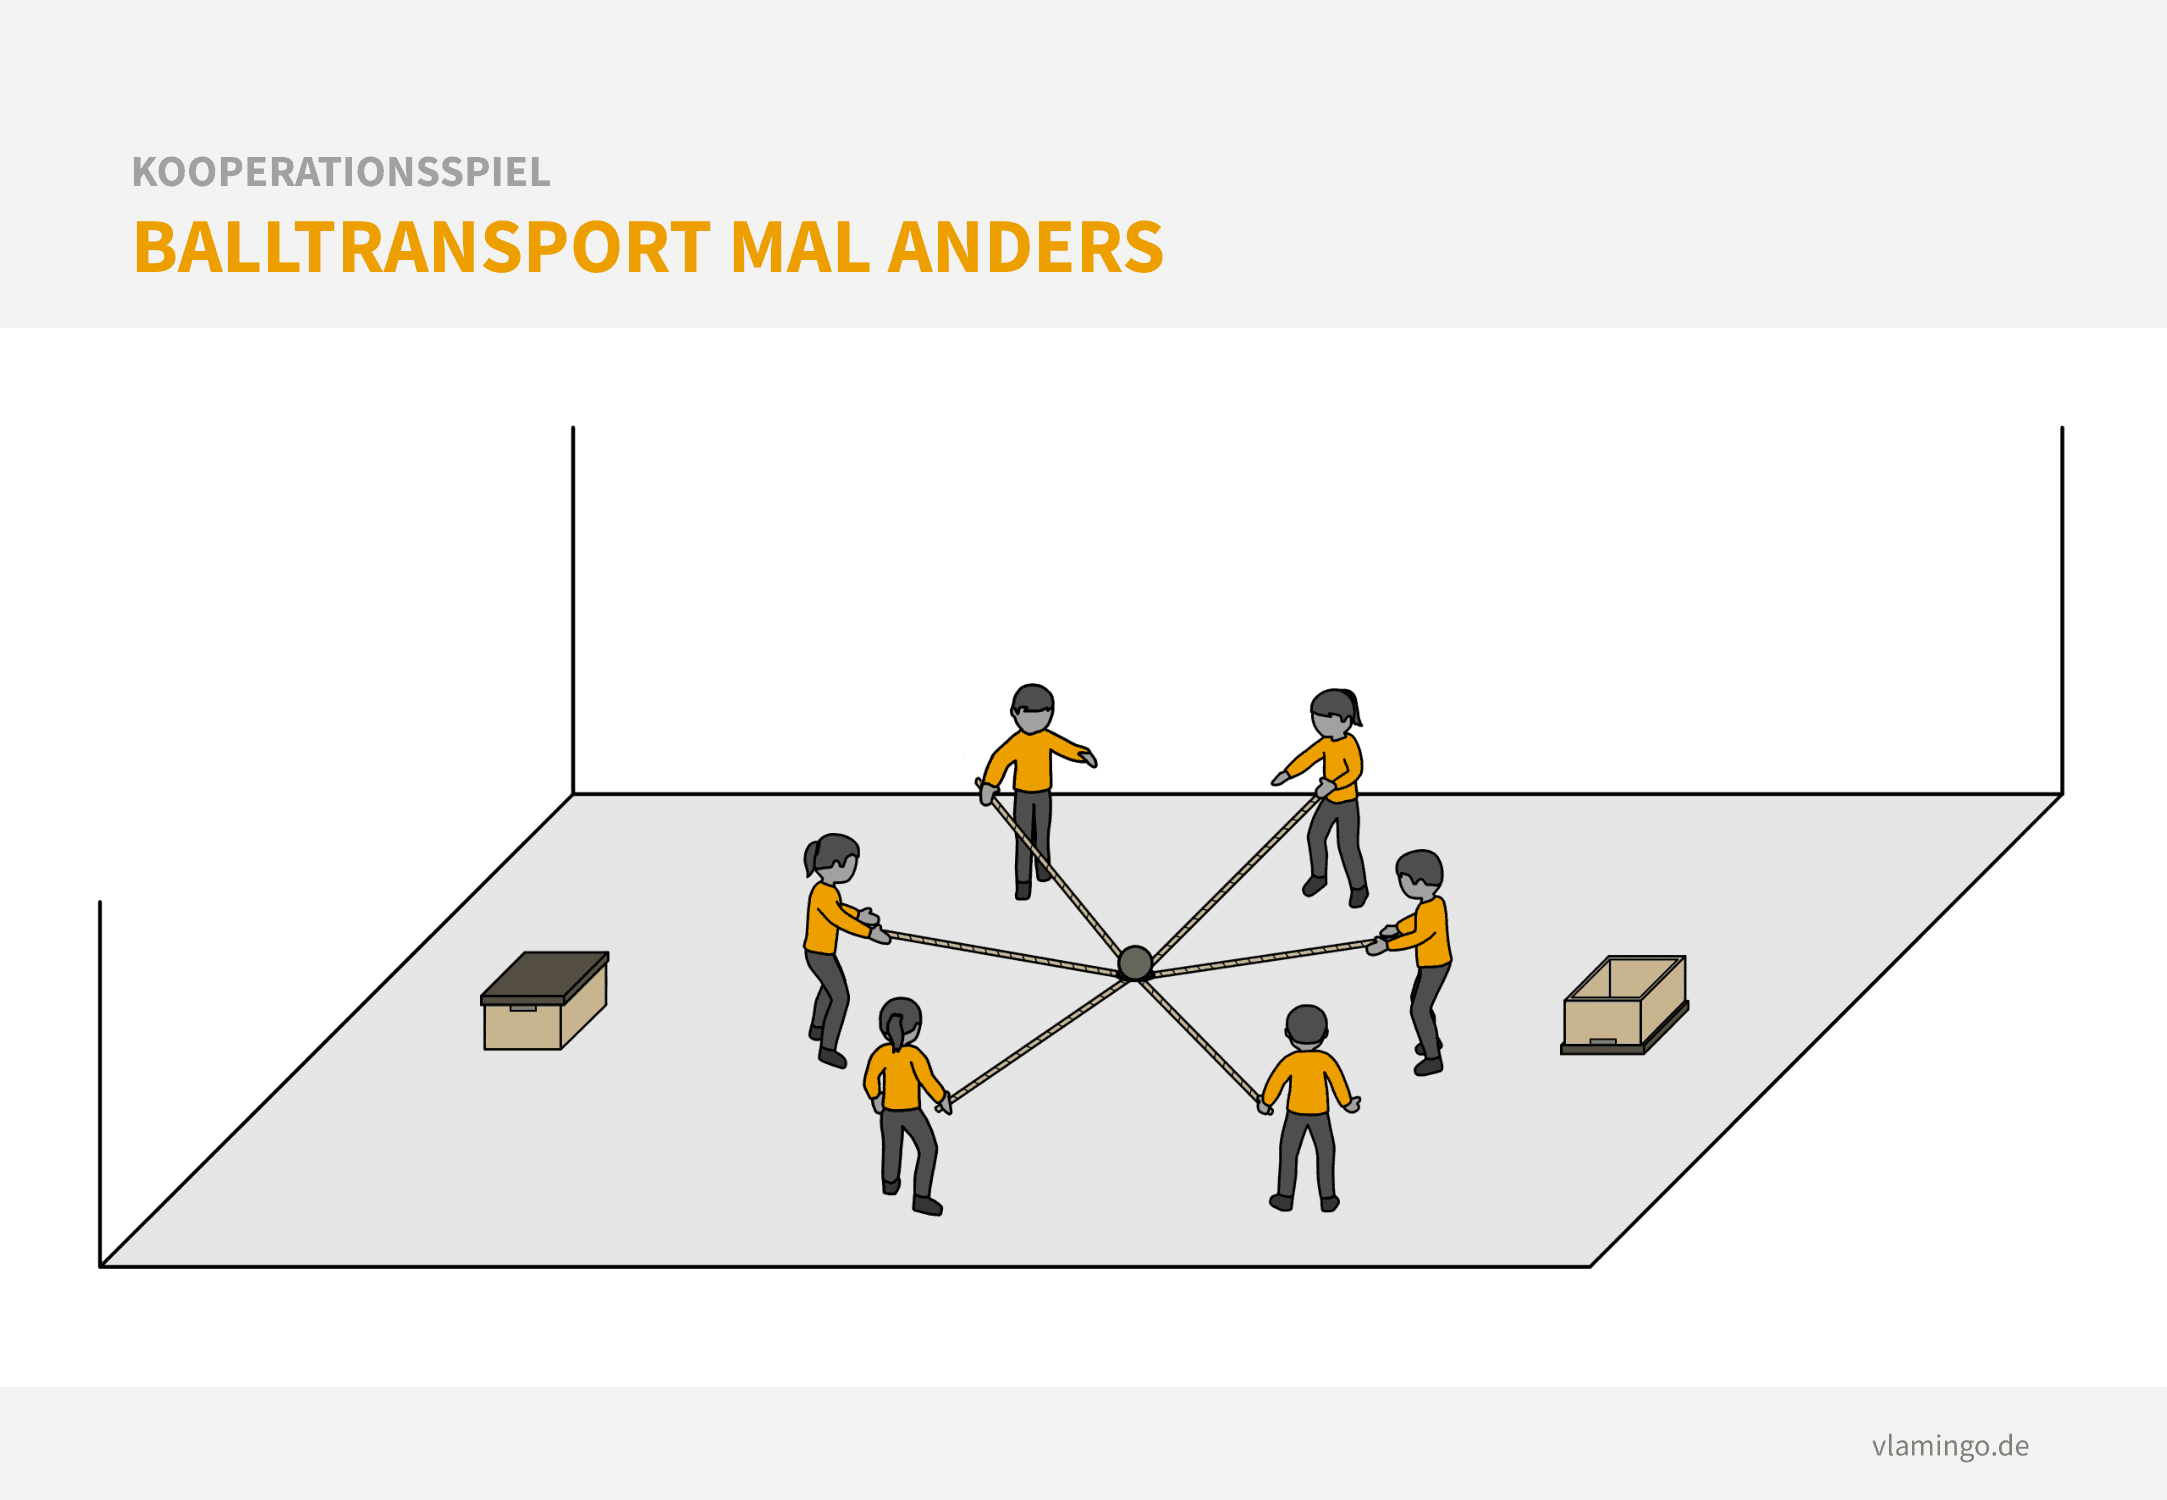 Kooperationsspiel: Balltransport mal anders